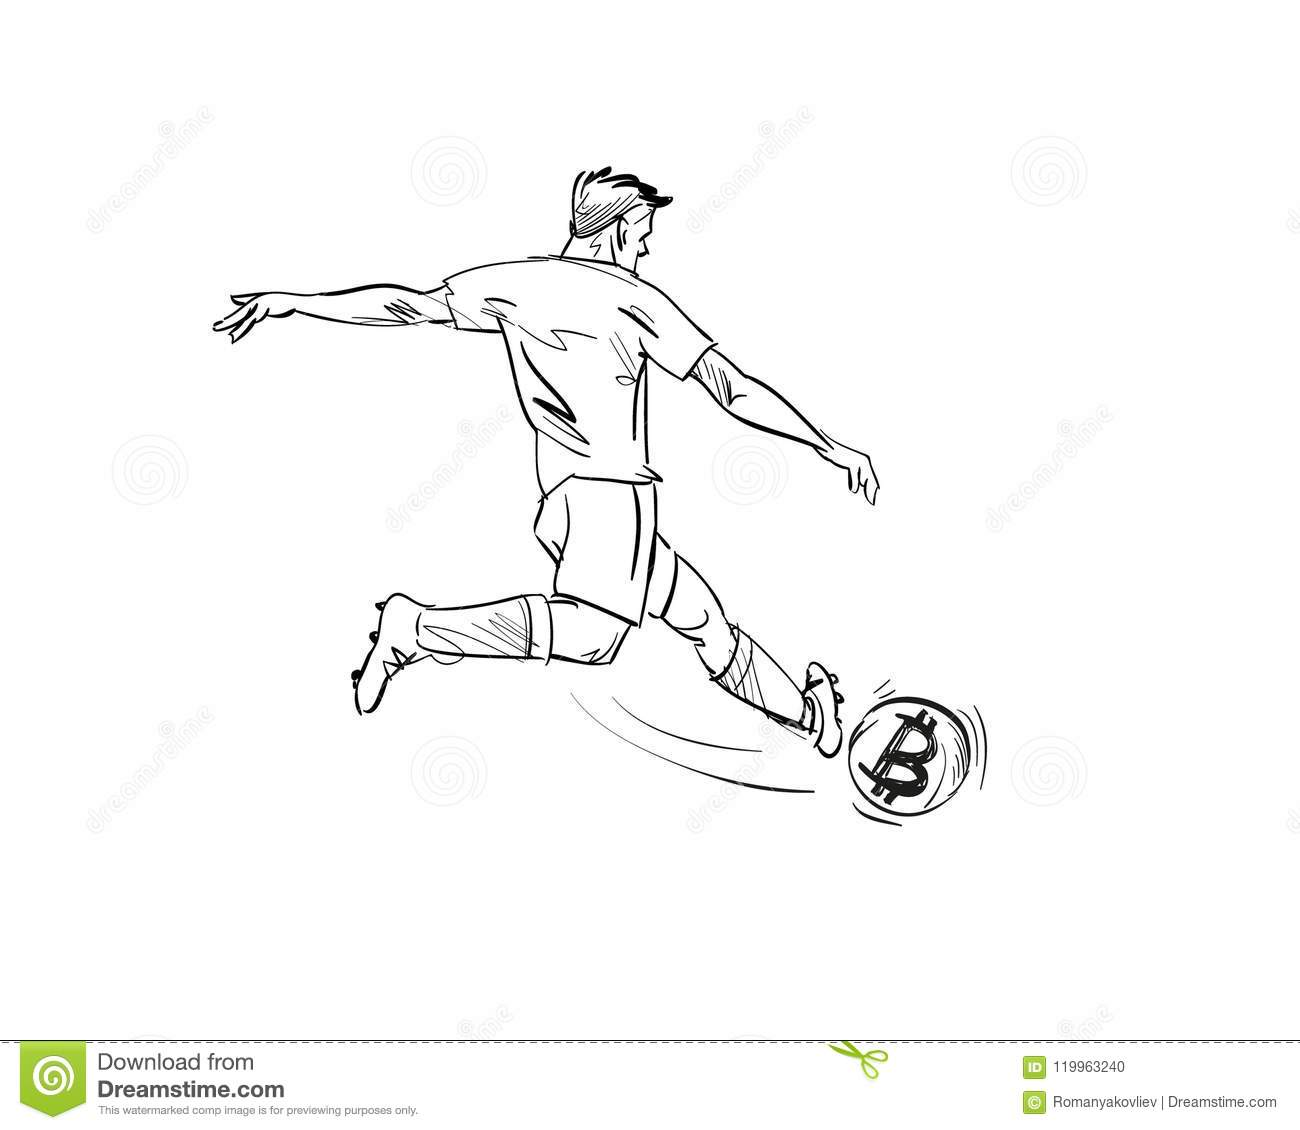 Football Player Hand Drawn Sketch Vector Illustration Stock